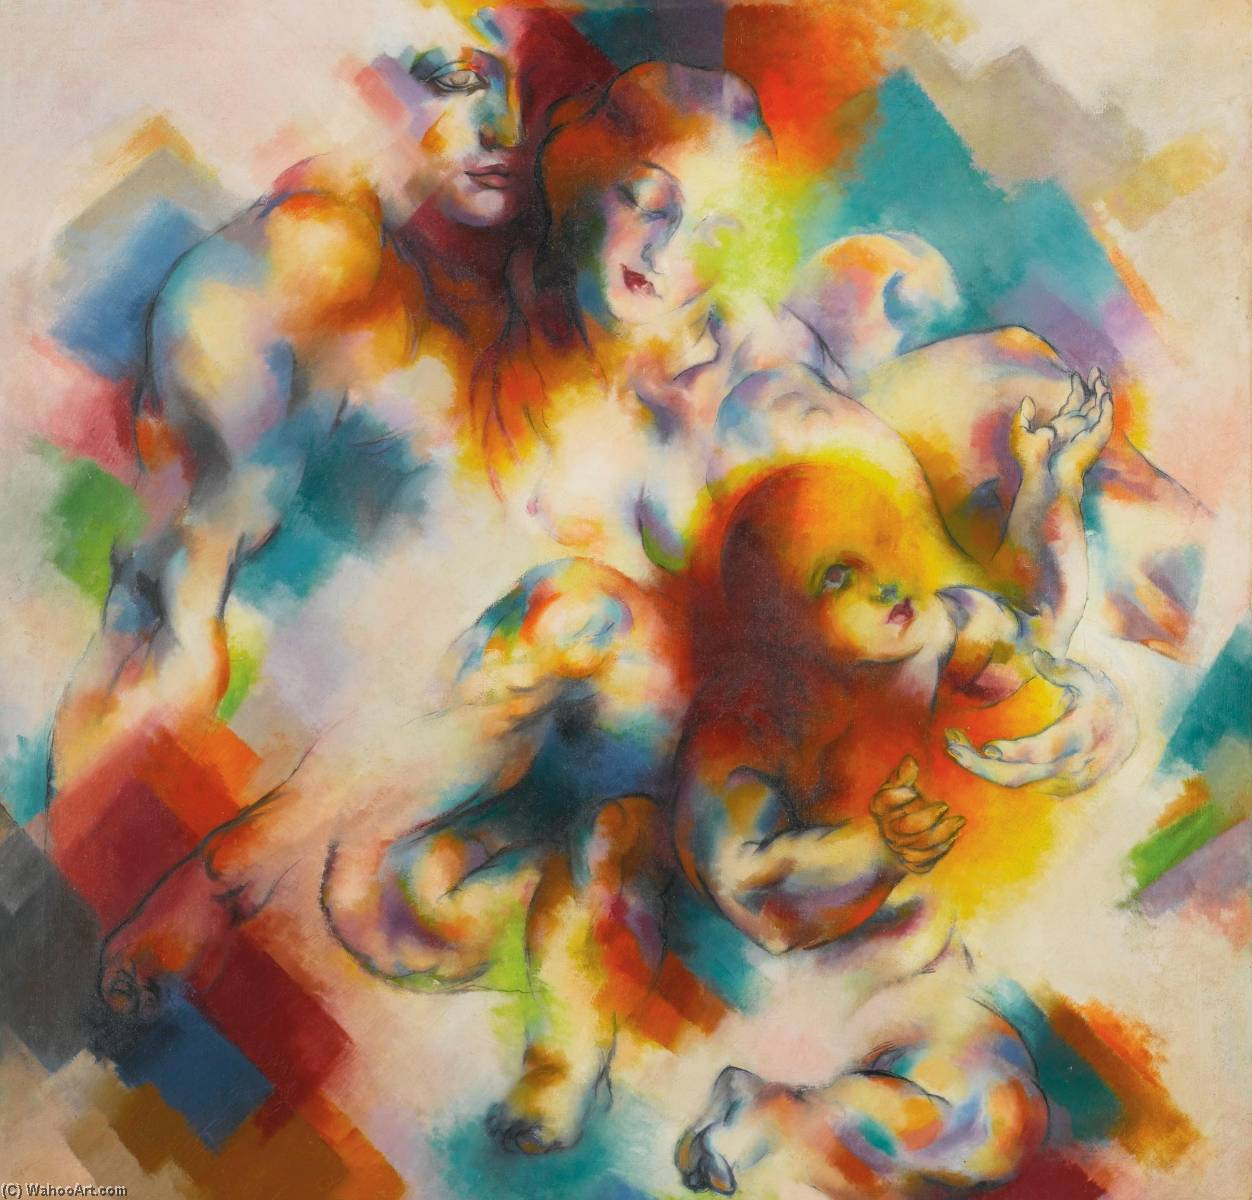 Wikioo.org - The Encyclopedia of Fine Arts - Painting, Artwork by Stanton Macdonald Wright - Nature Synchromy